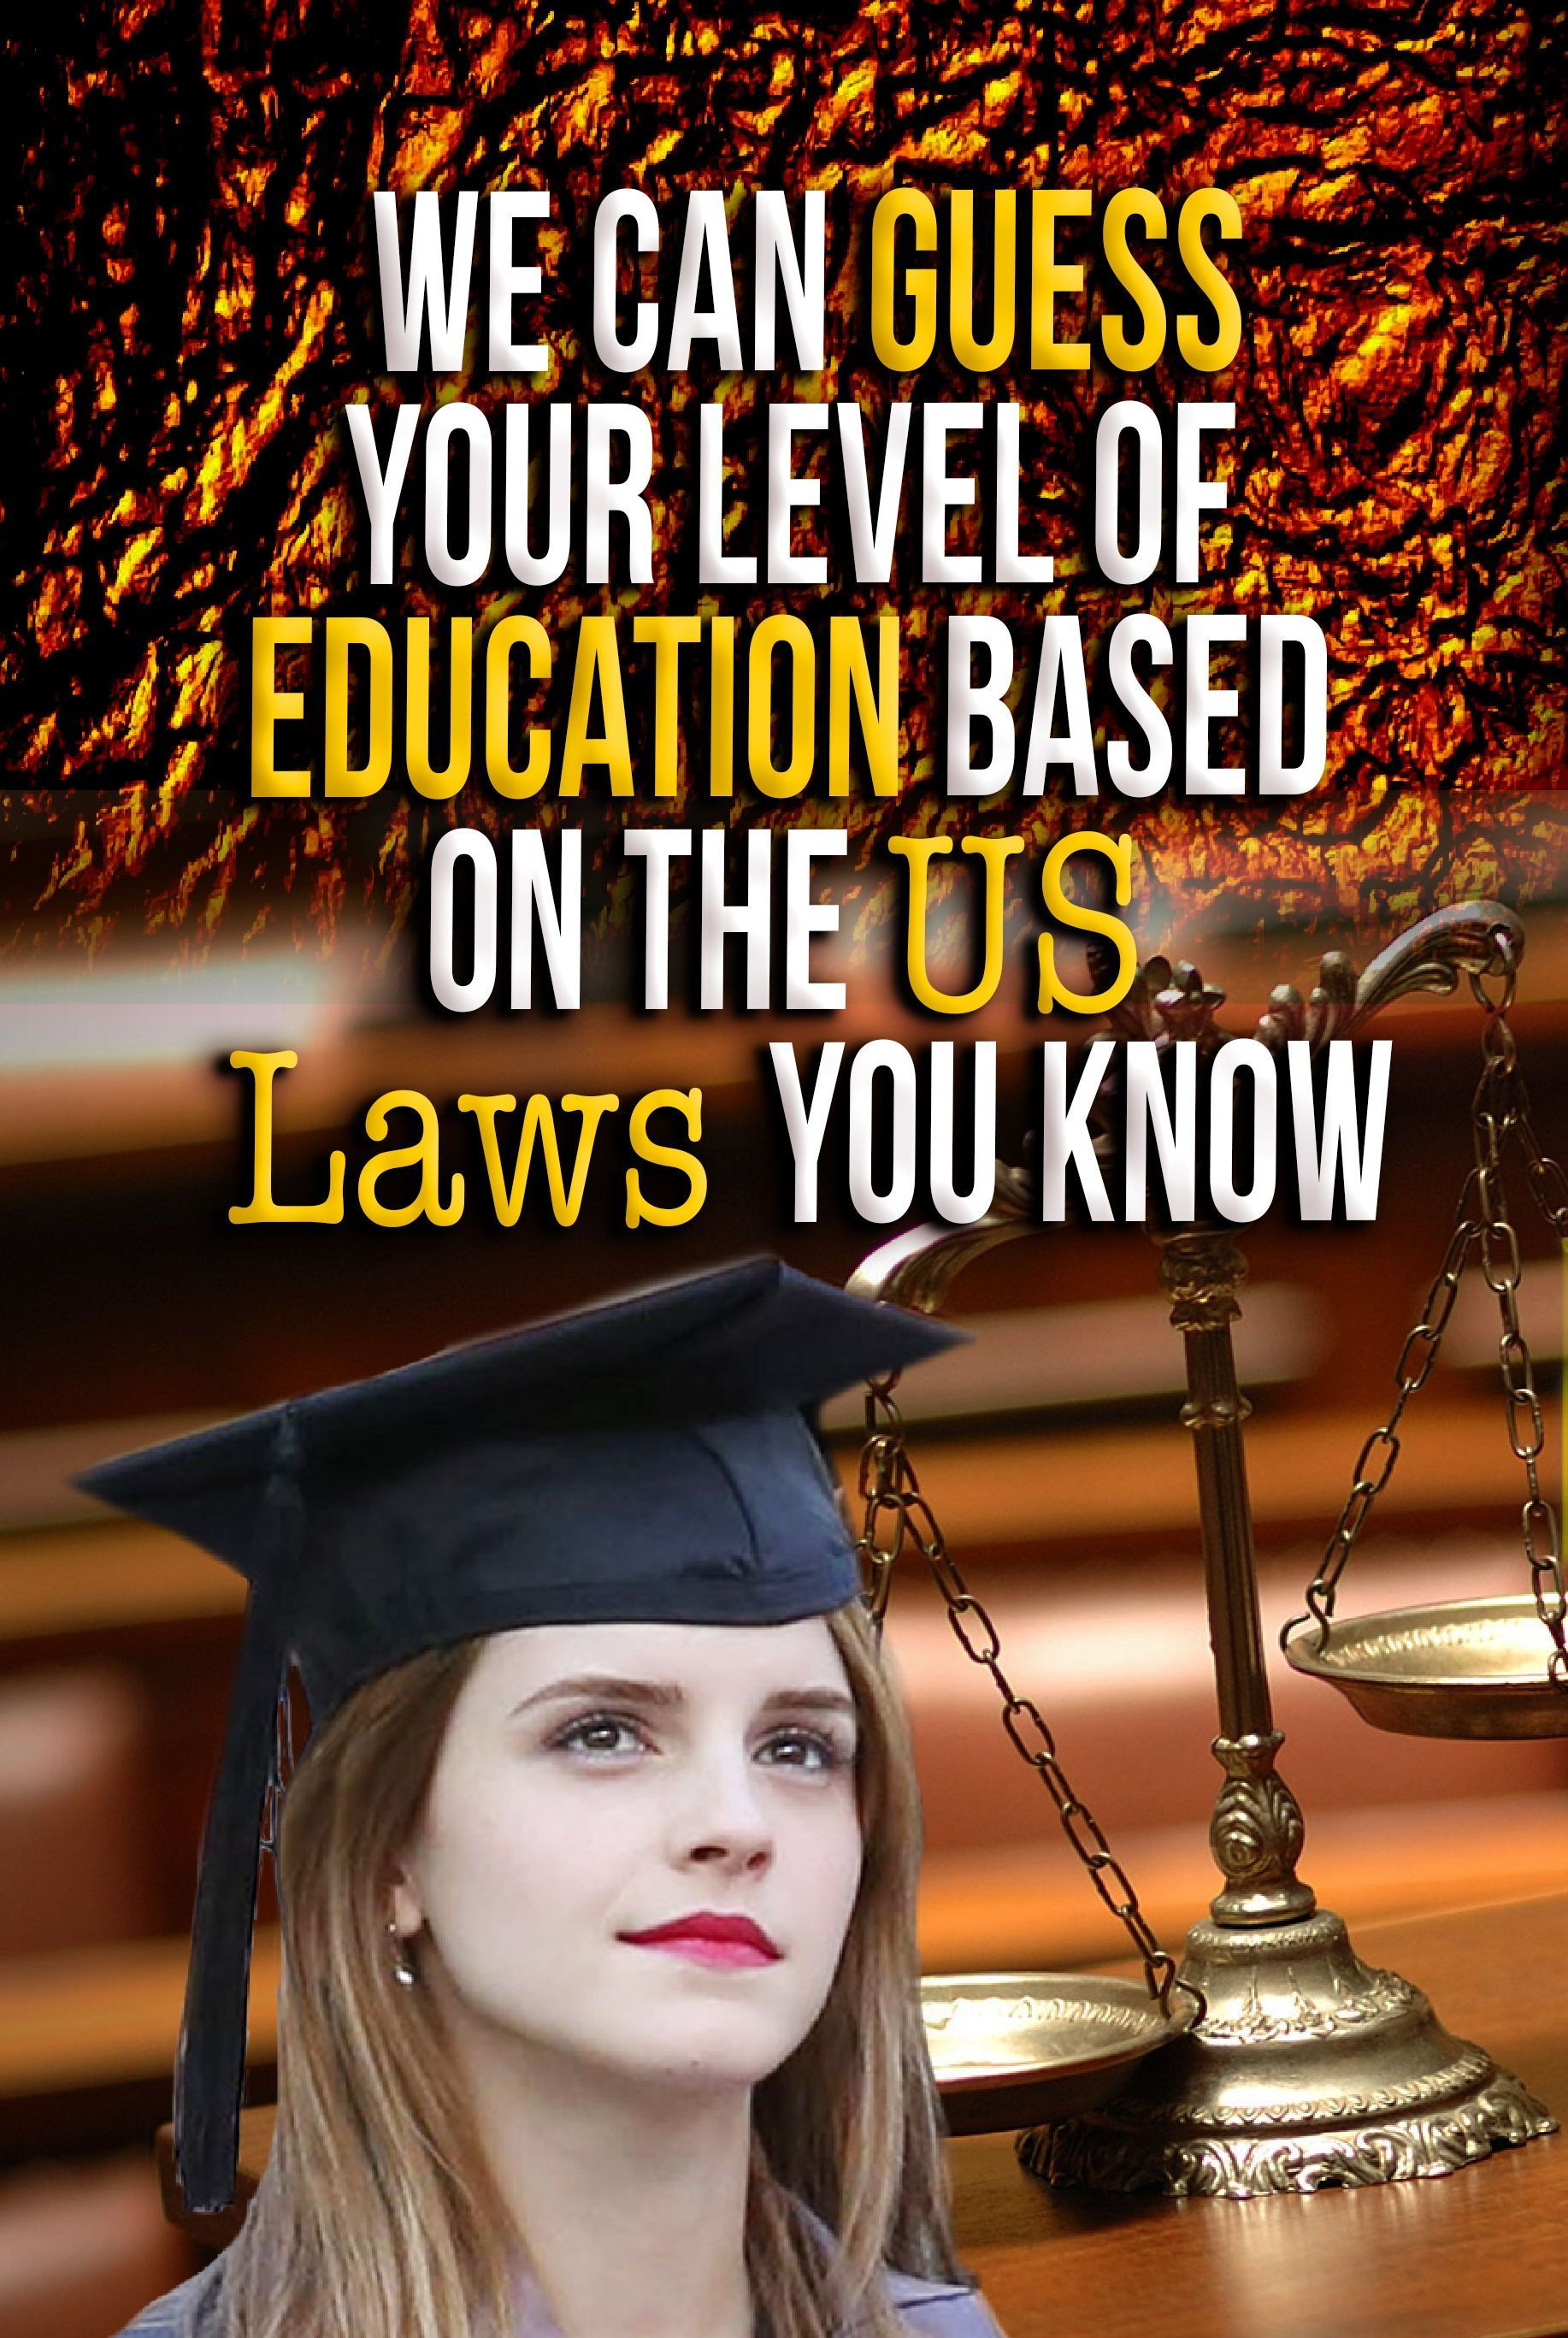 Quiz We Can Guess Your Level Of Education Based On The US Laws You KnowPersonality Quiz Be Quiz We Can Guess Your Level Of Education Based On The US Laws You Know